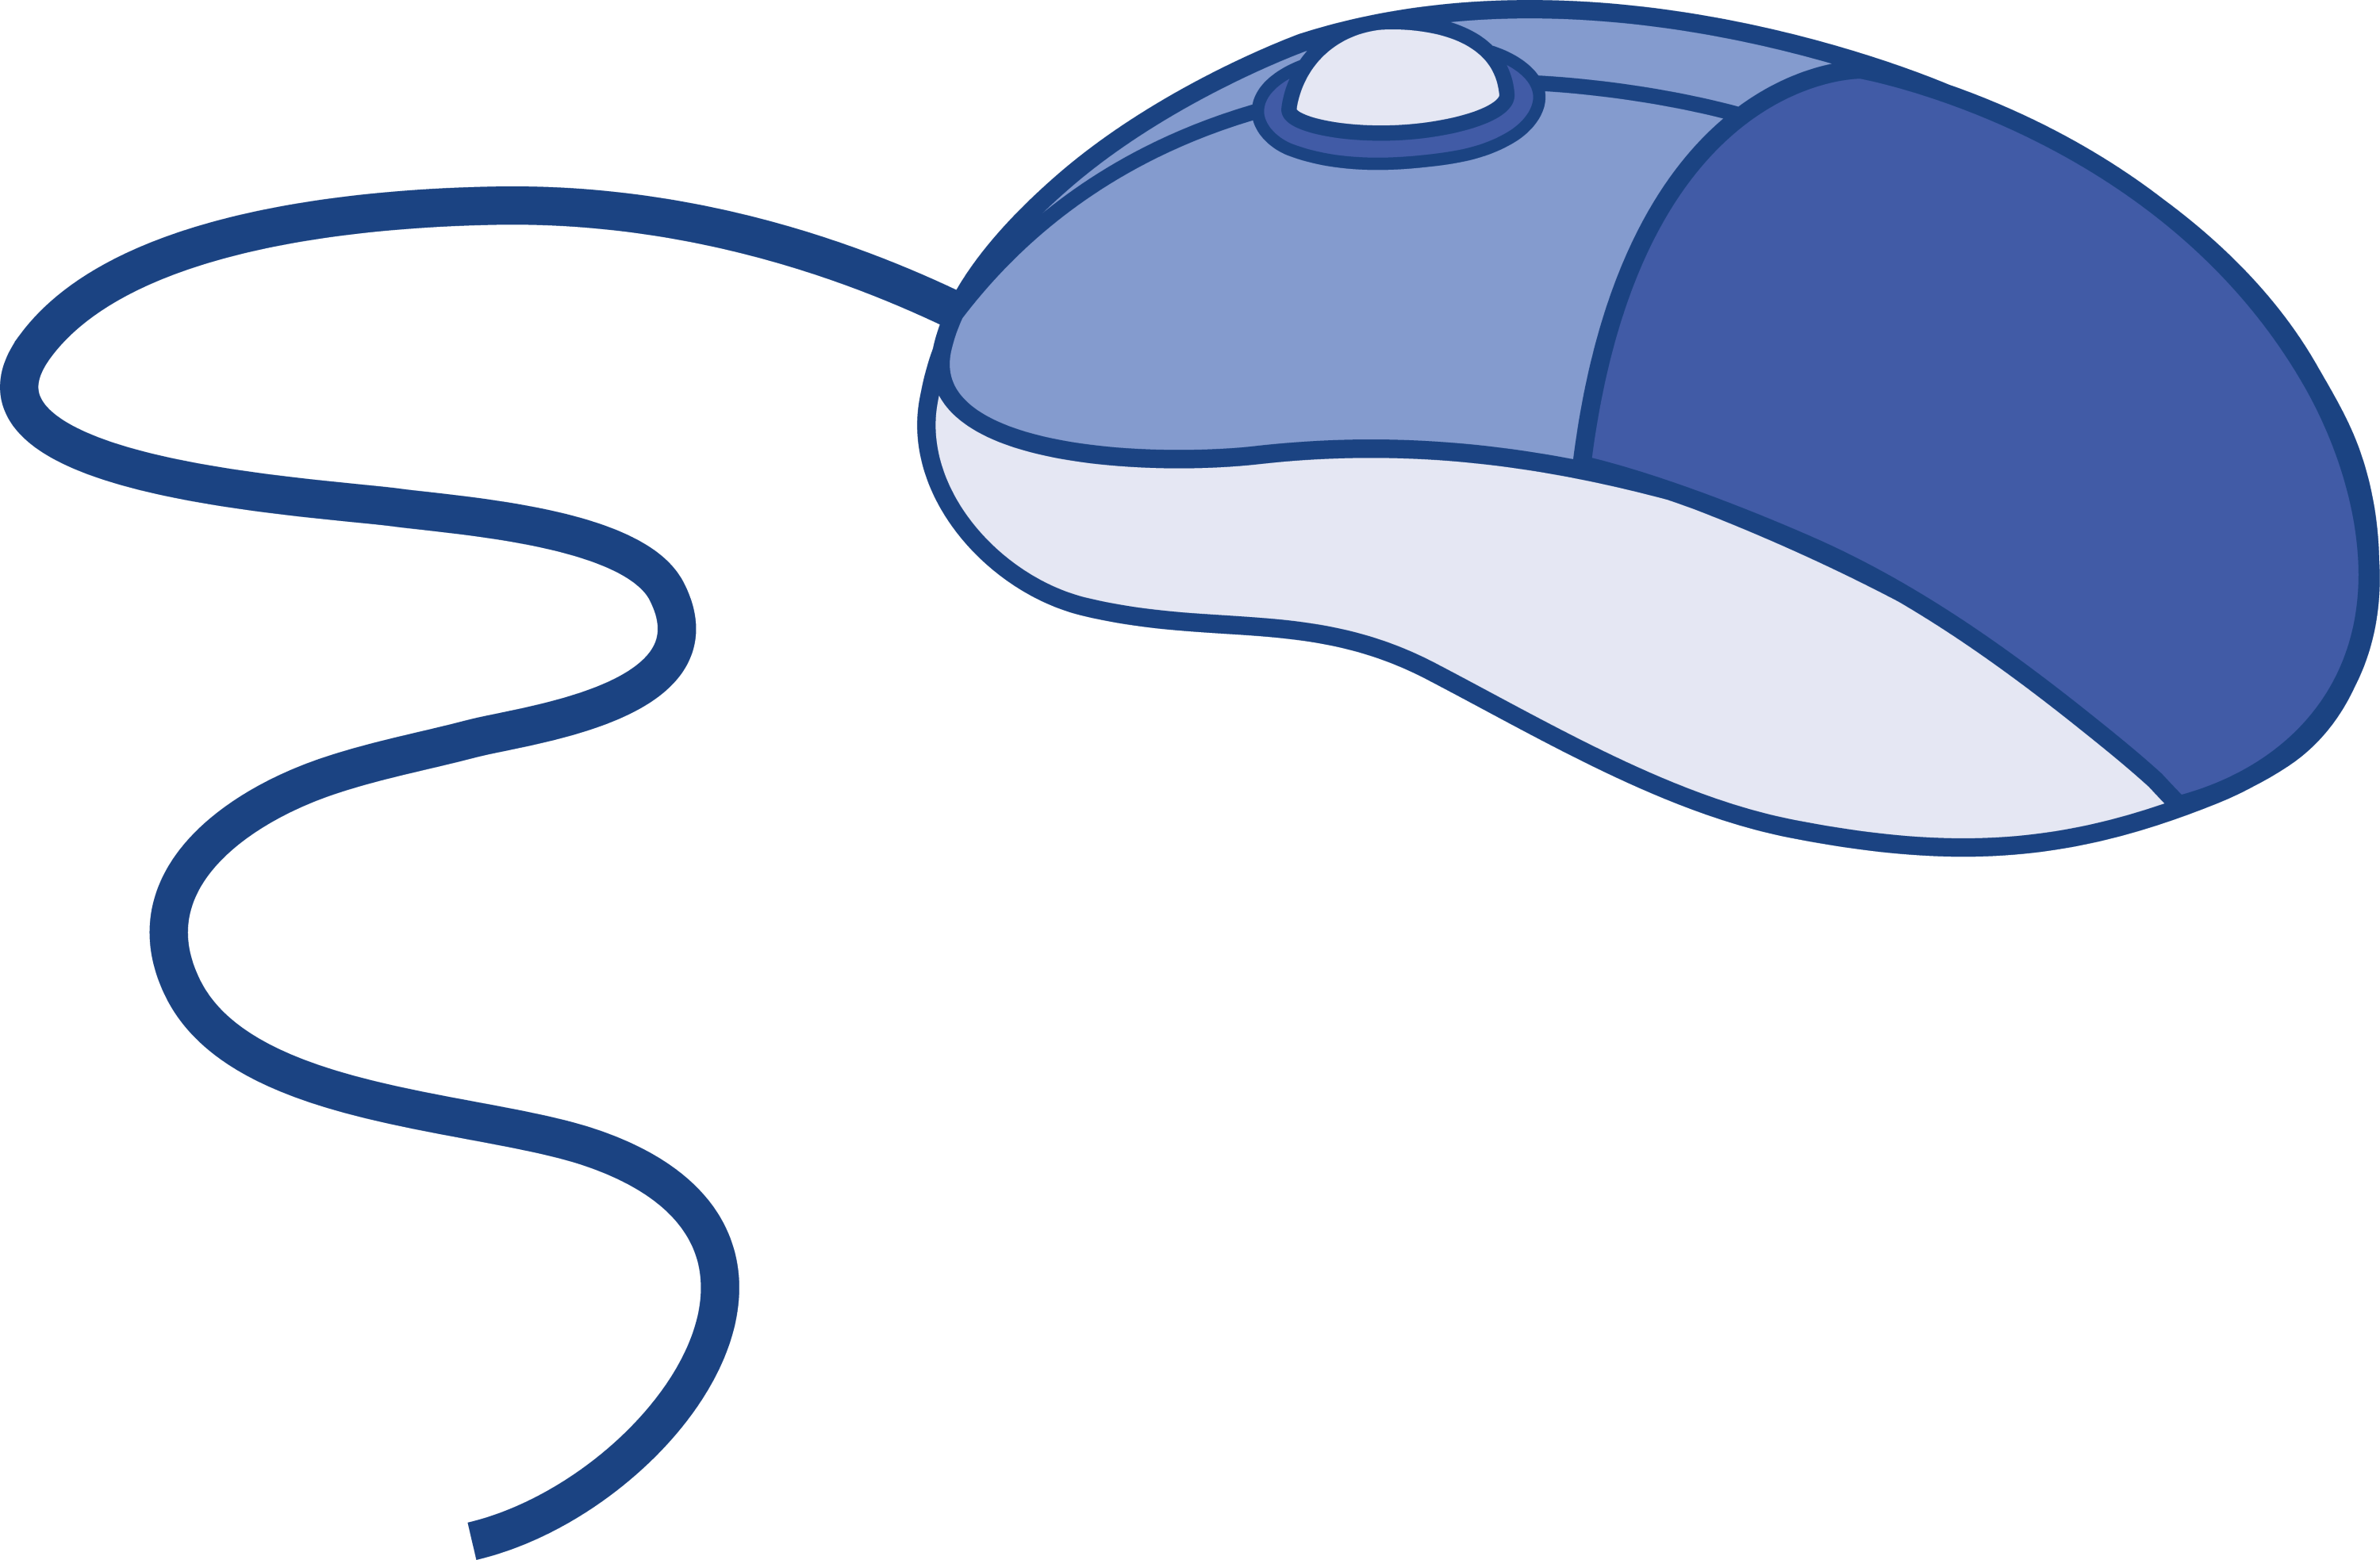 Animated mouse png - photo#19